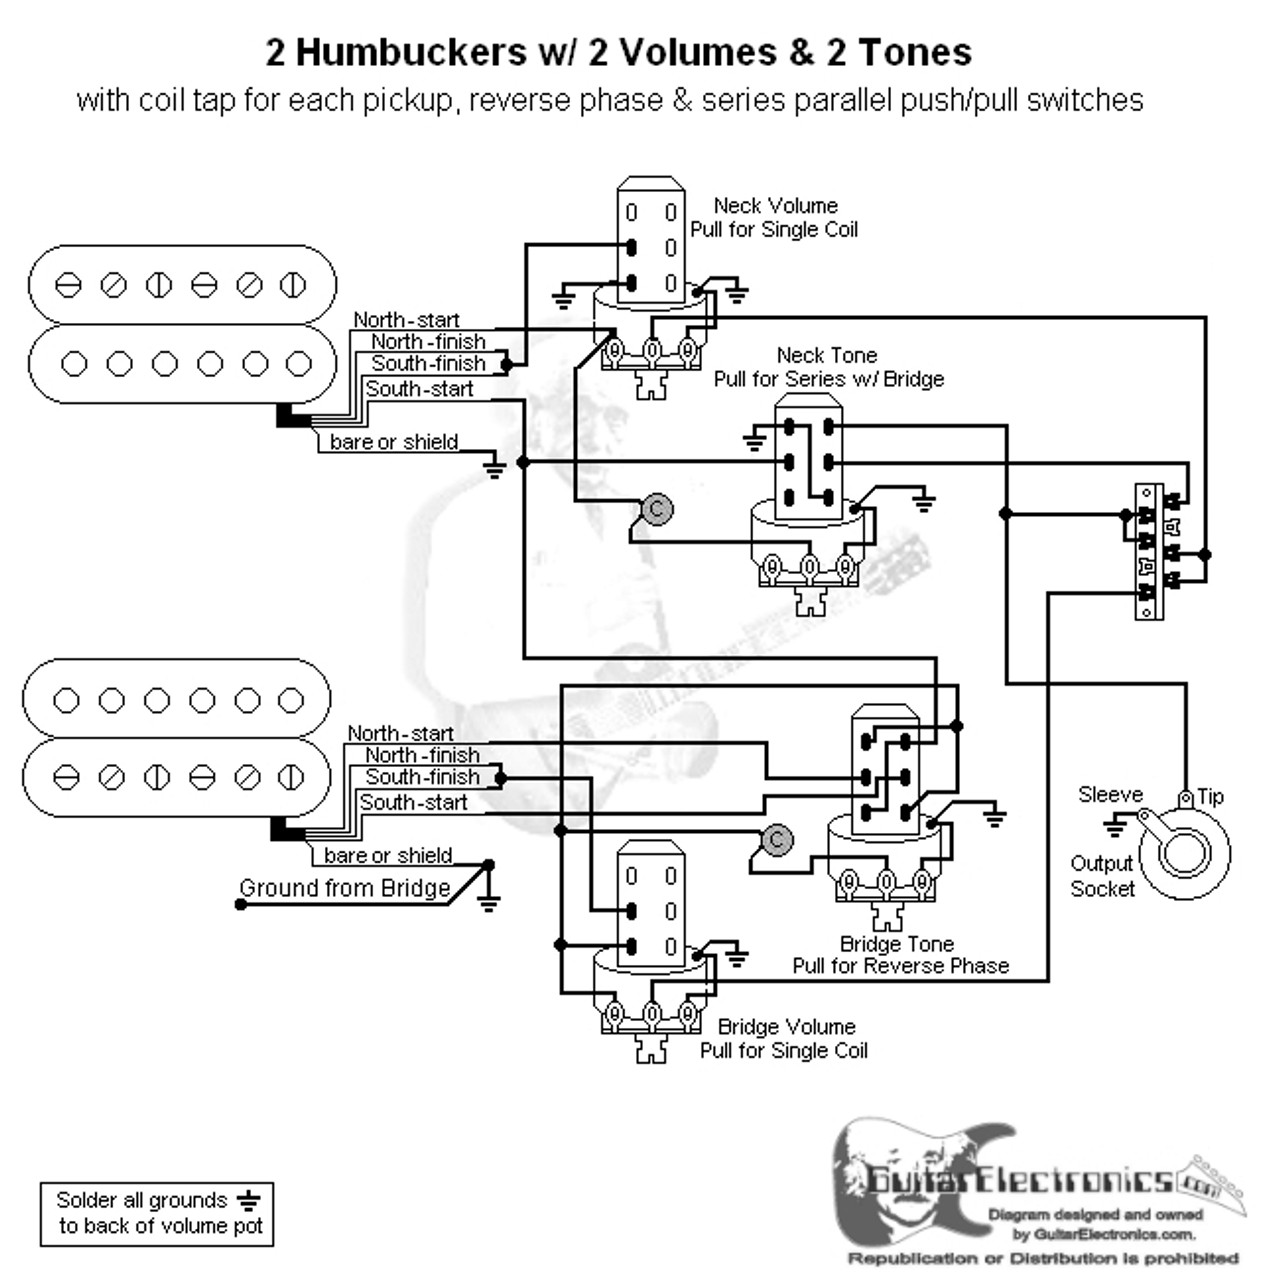 2 HBs/3-Way Lever/1 Vol/2 Tones/Coil Tap & Series Parallel & Phase